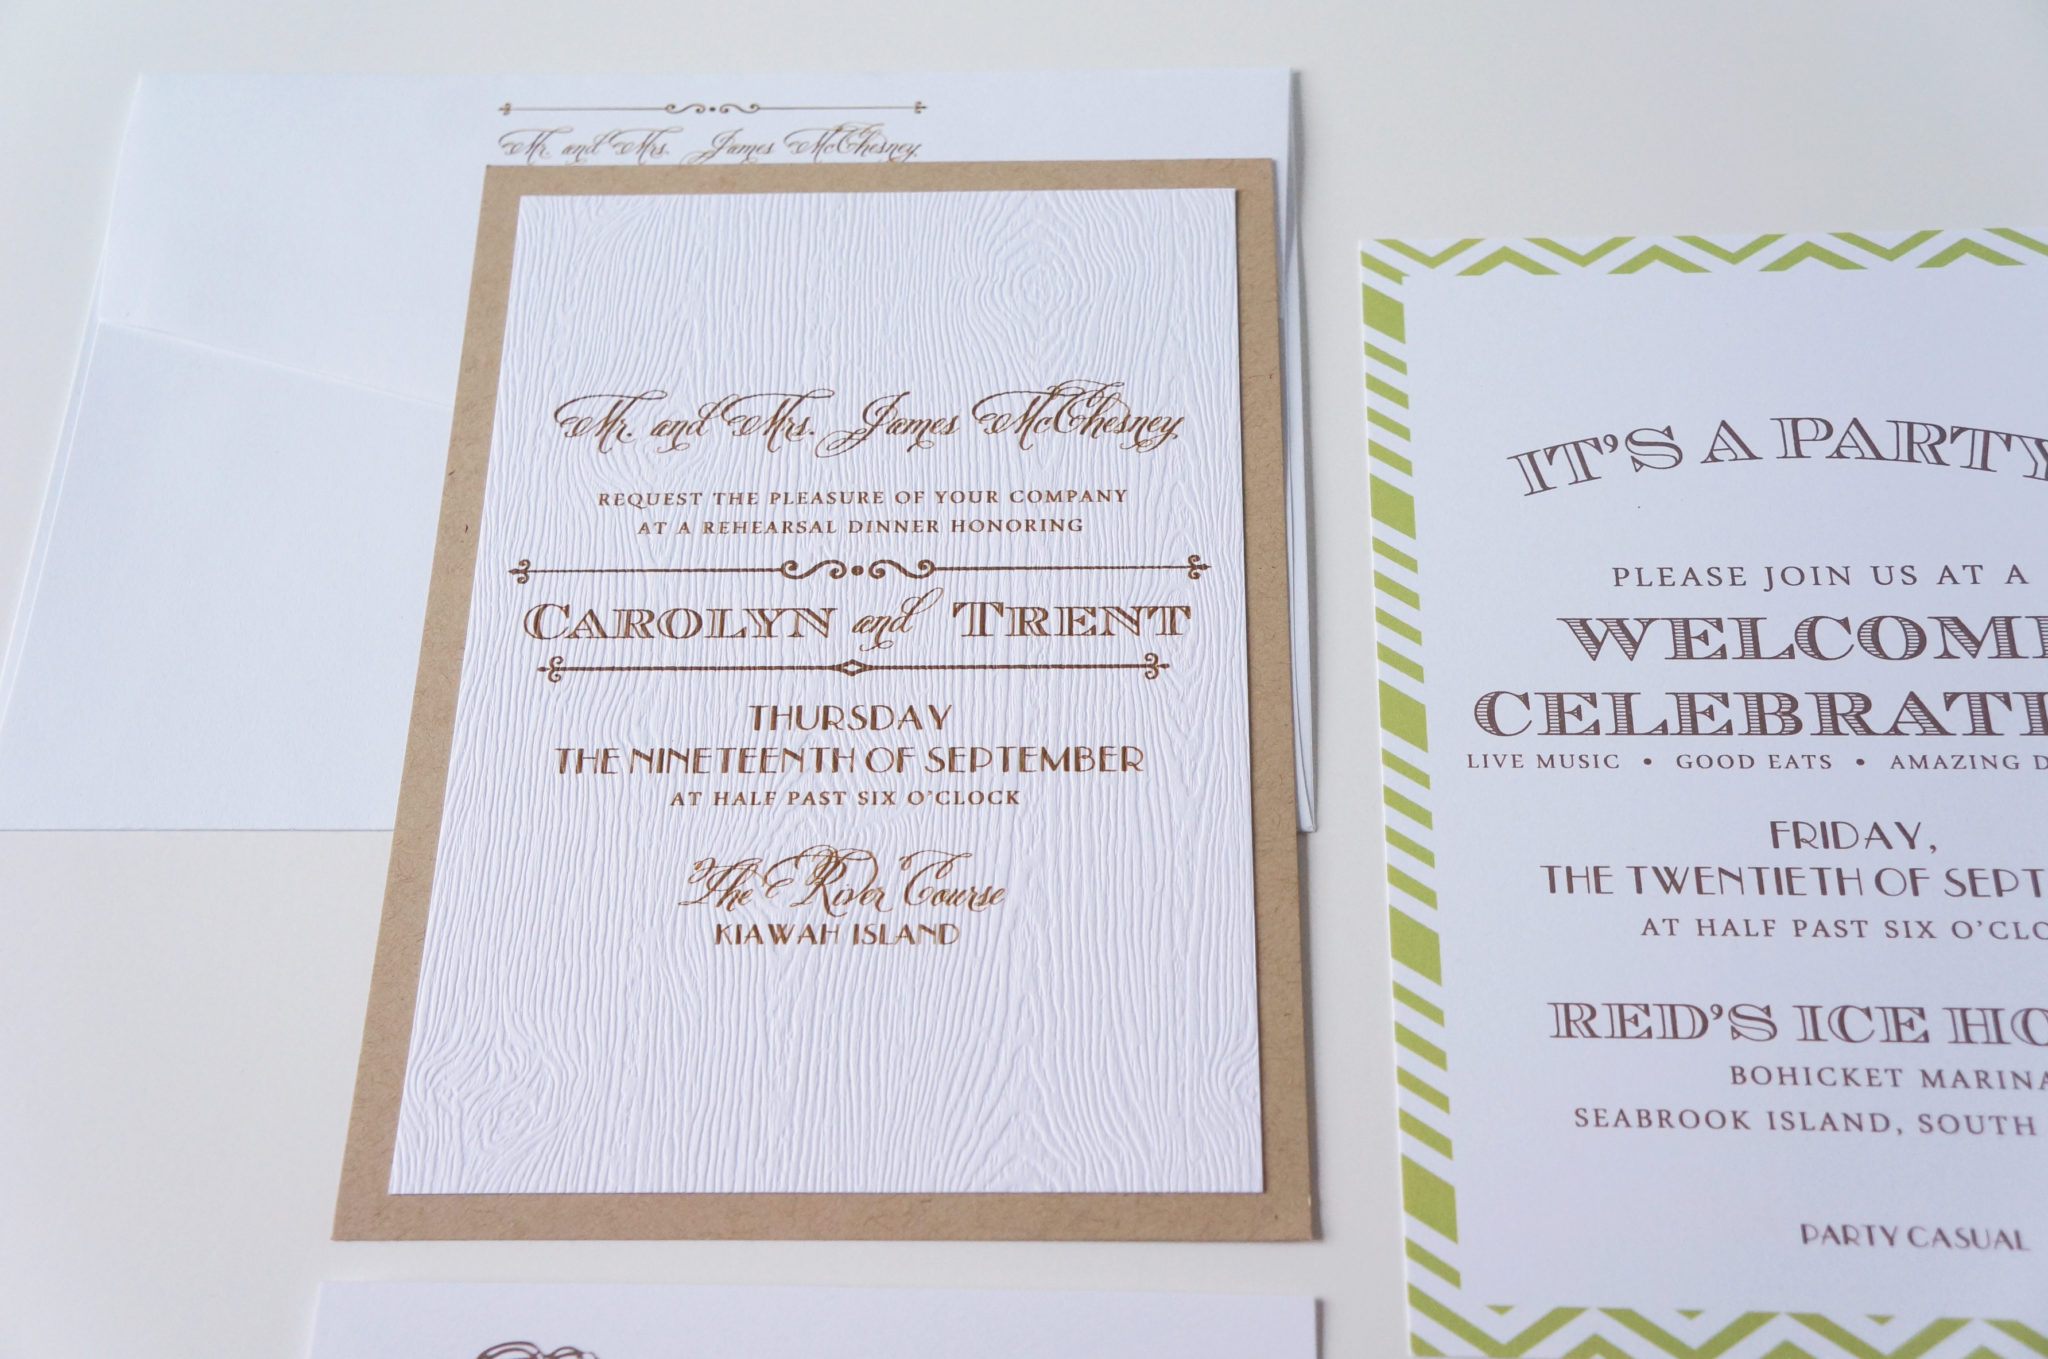 Wedding Welcome Dinner Invitation Wording: Charleston Rehearsal Dinner Invitation By Dodeline Design